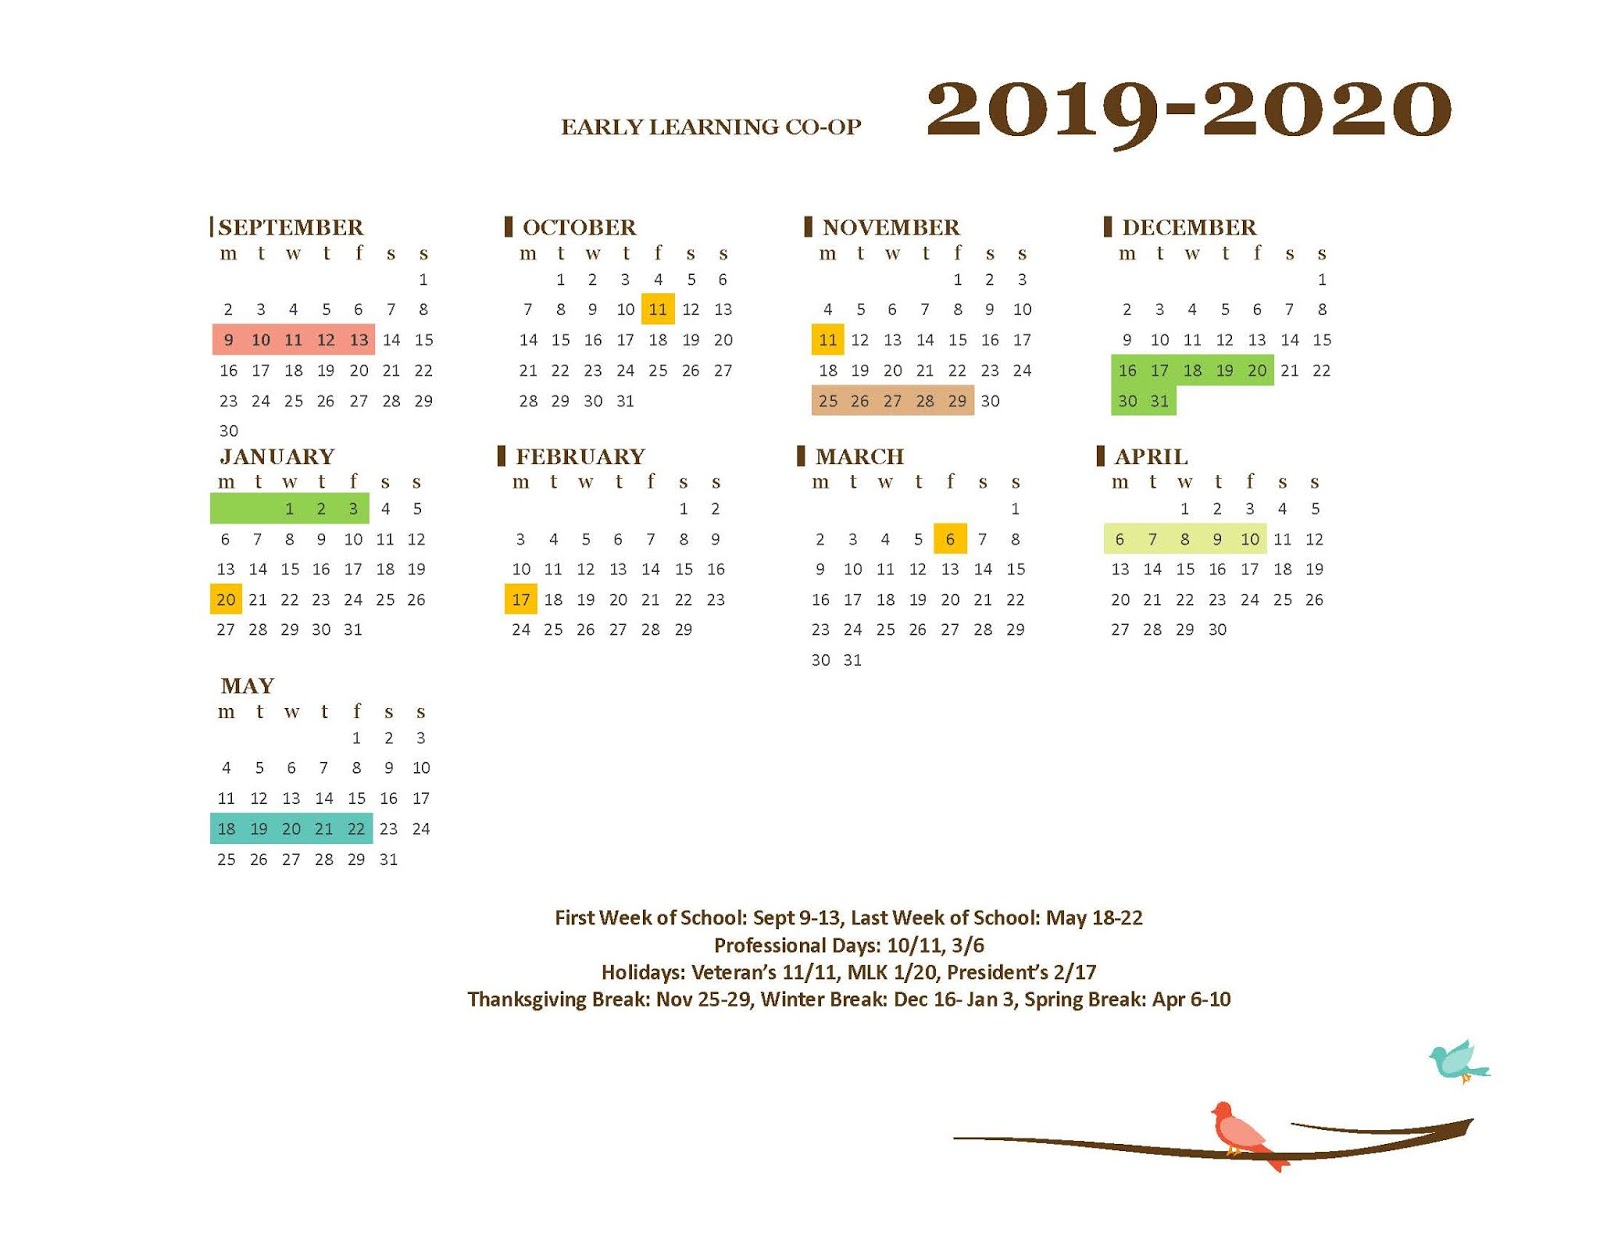 Richland Early Learning Coop: Calendars in Richland 1 Calendar